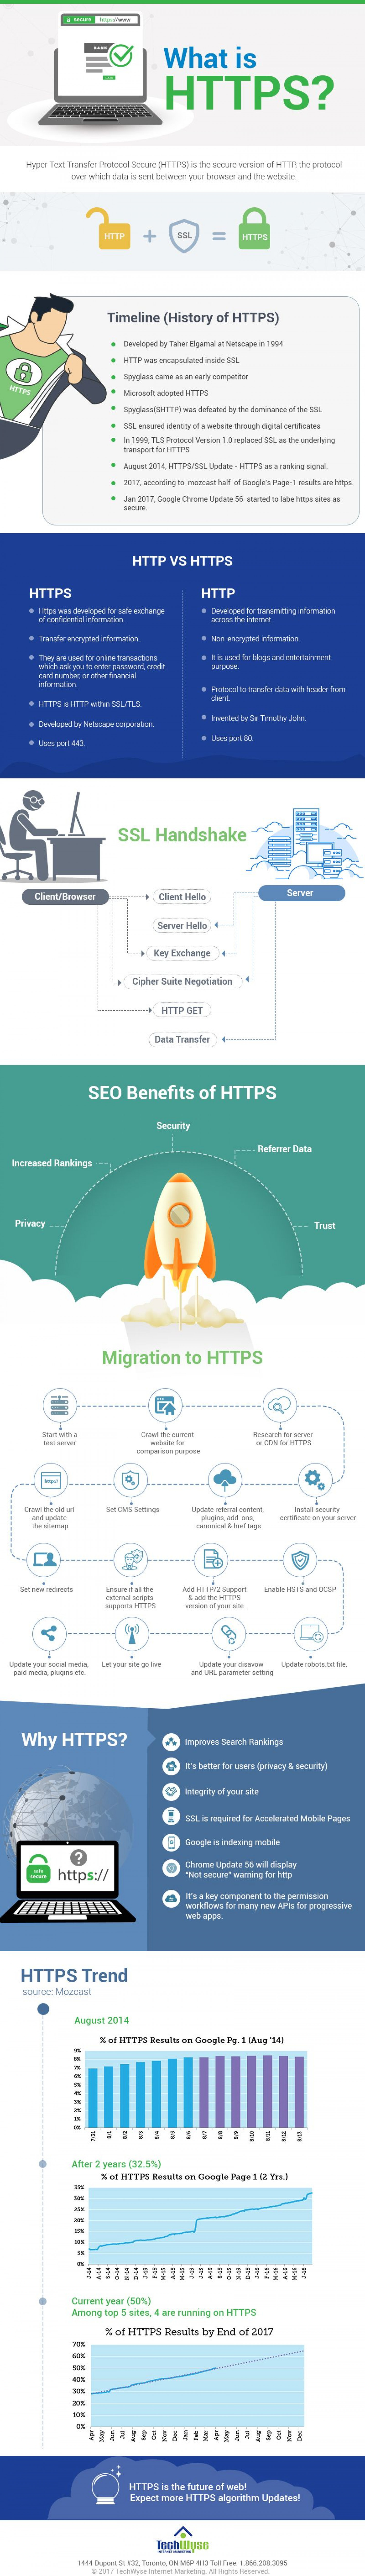 Why Should You Upgrade to HTTPS? Infographic